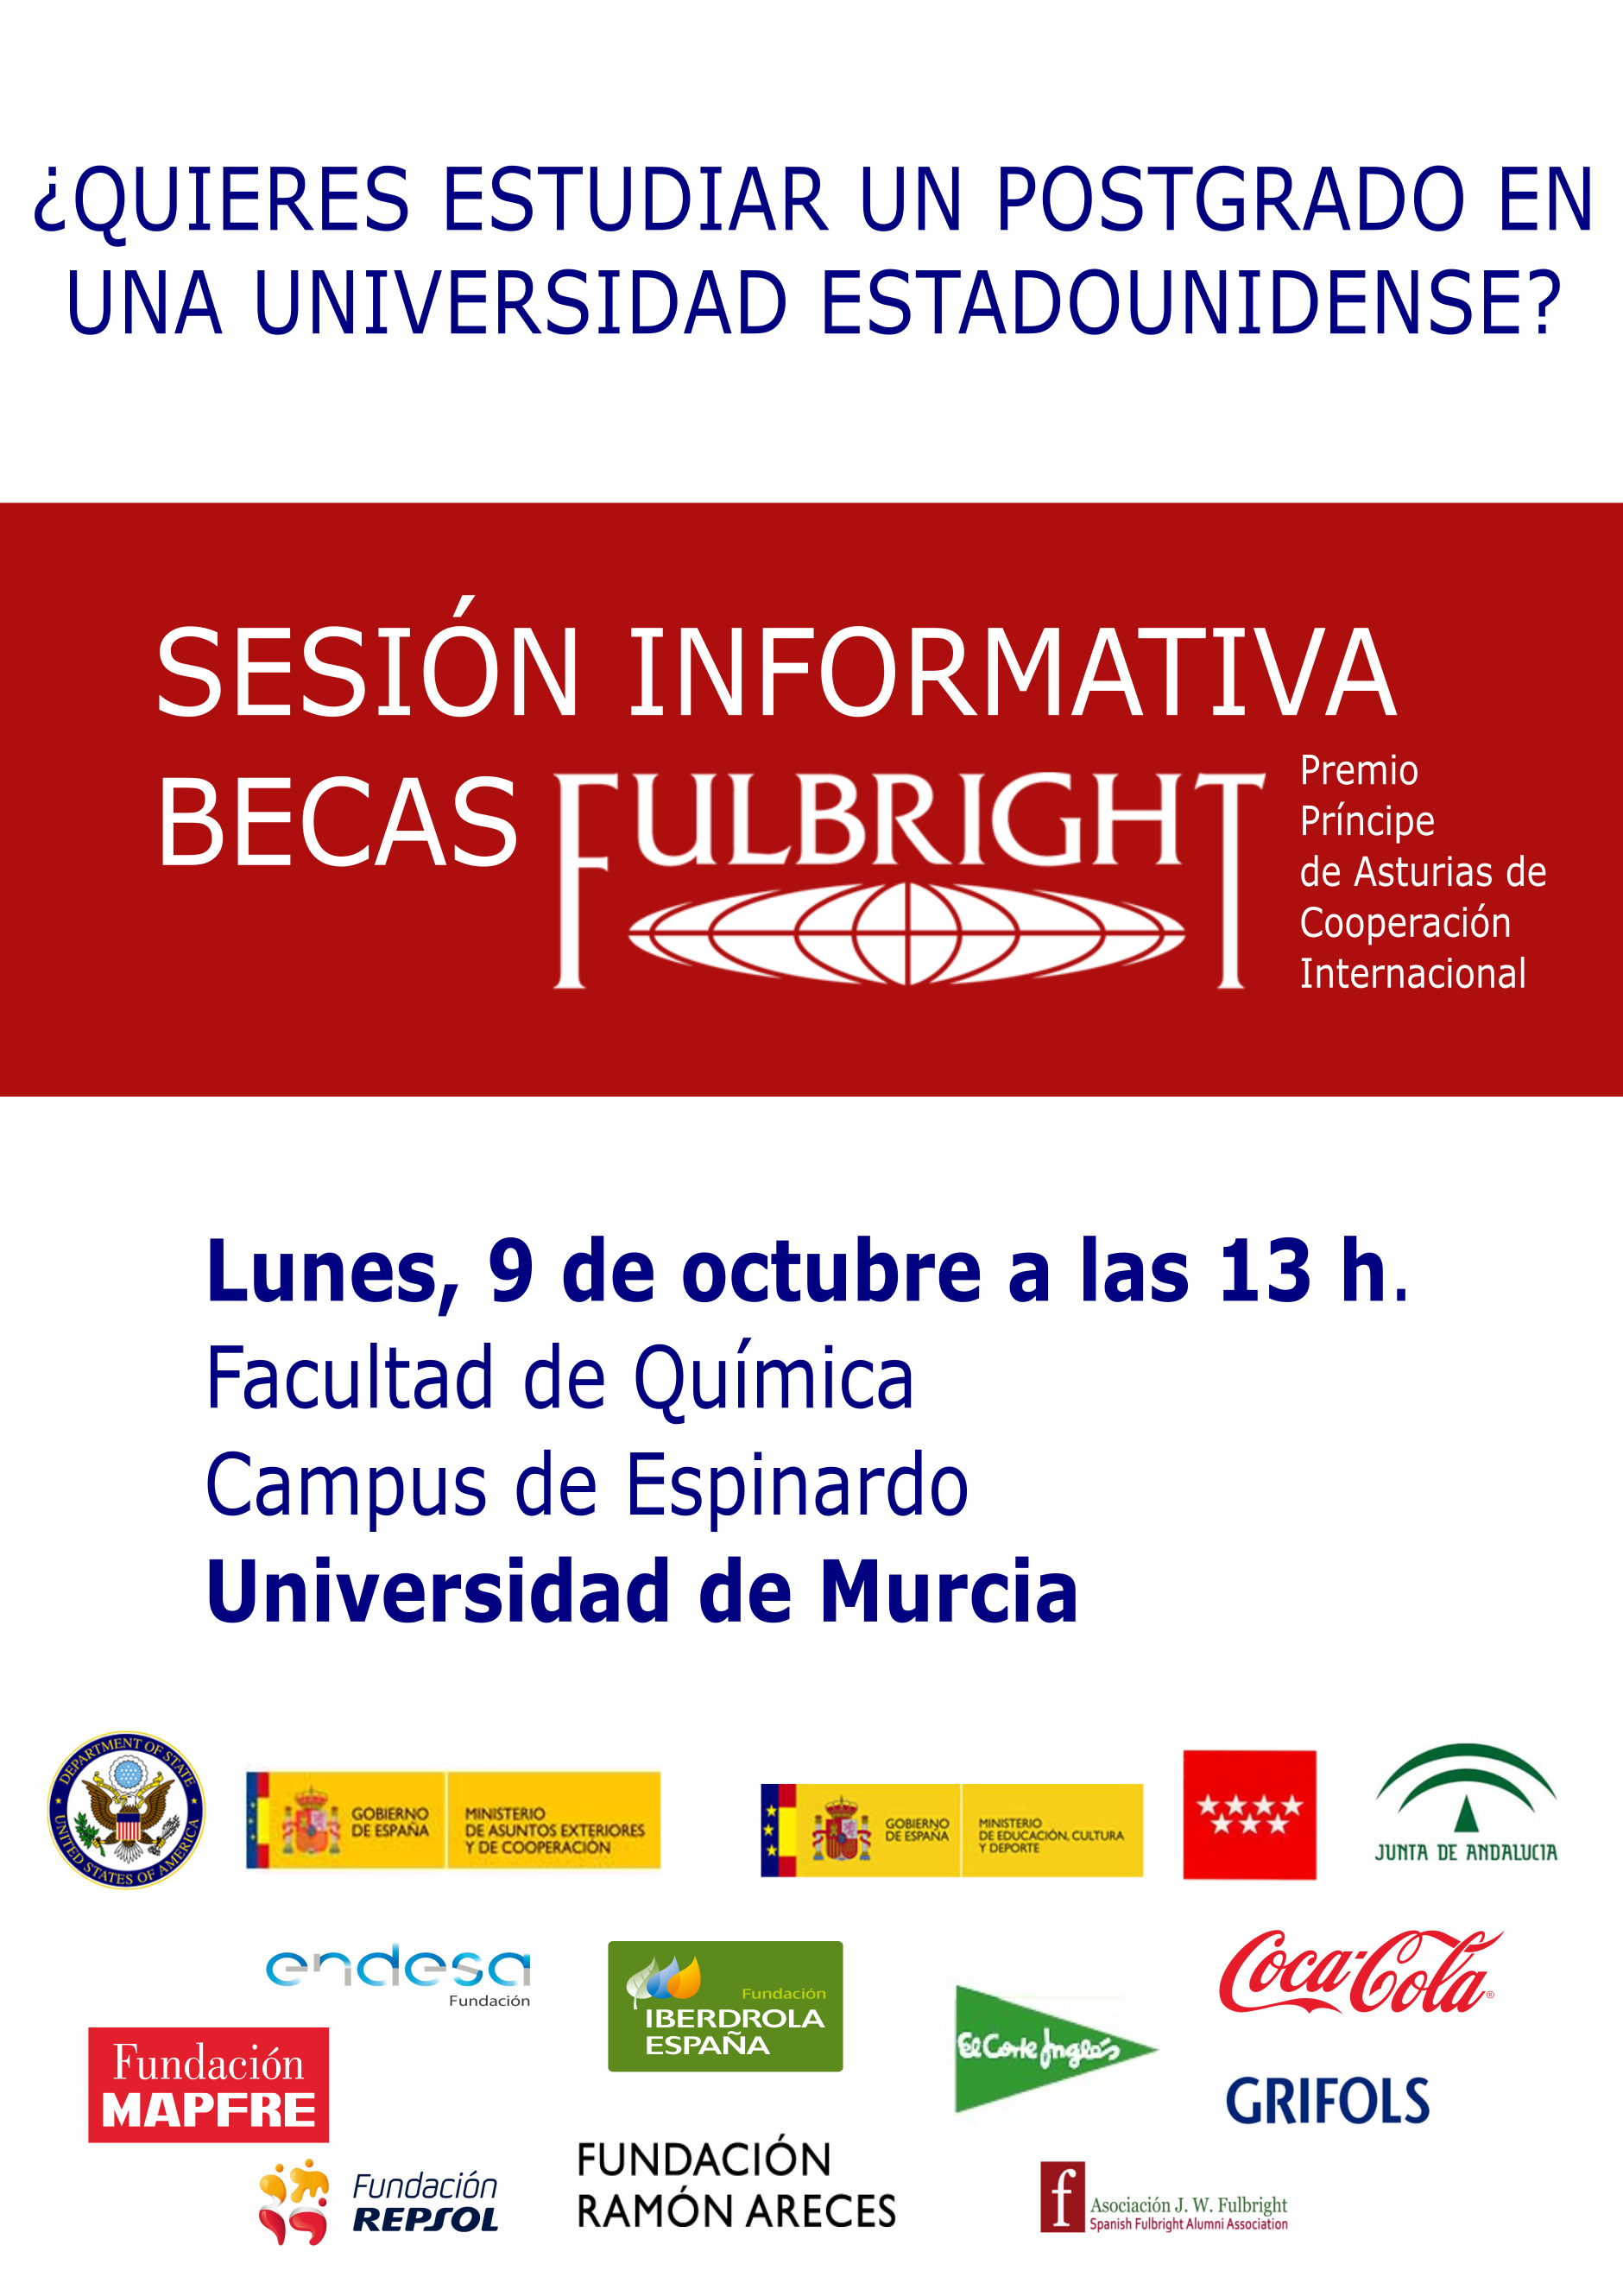 Fulbright Quimica